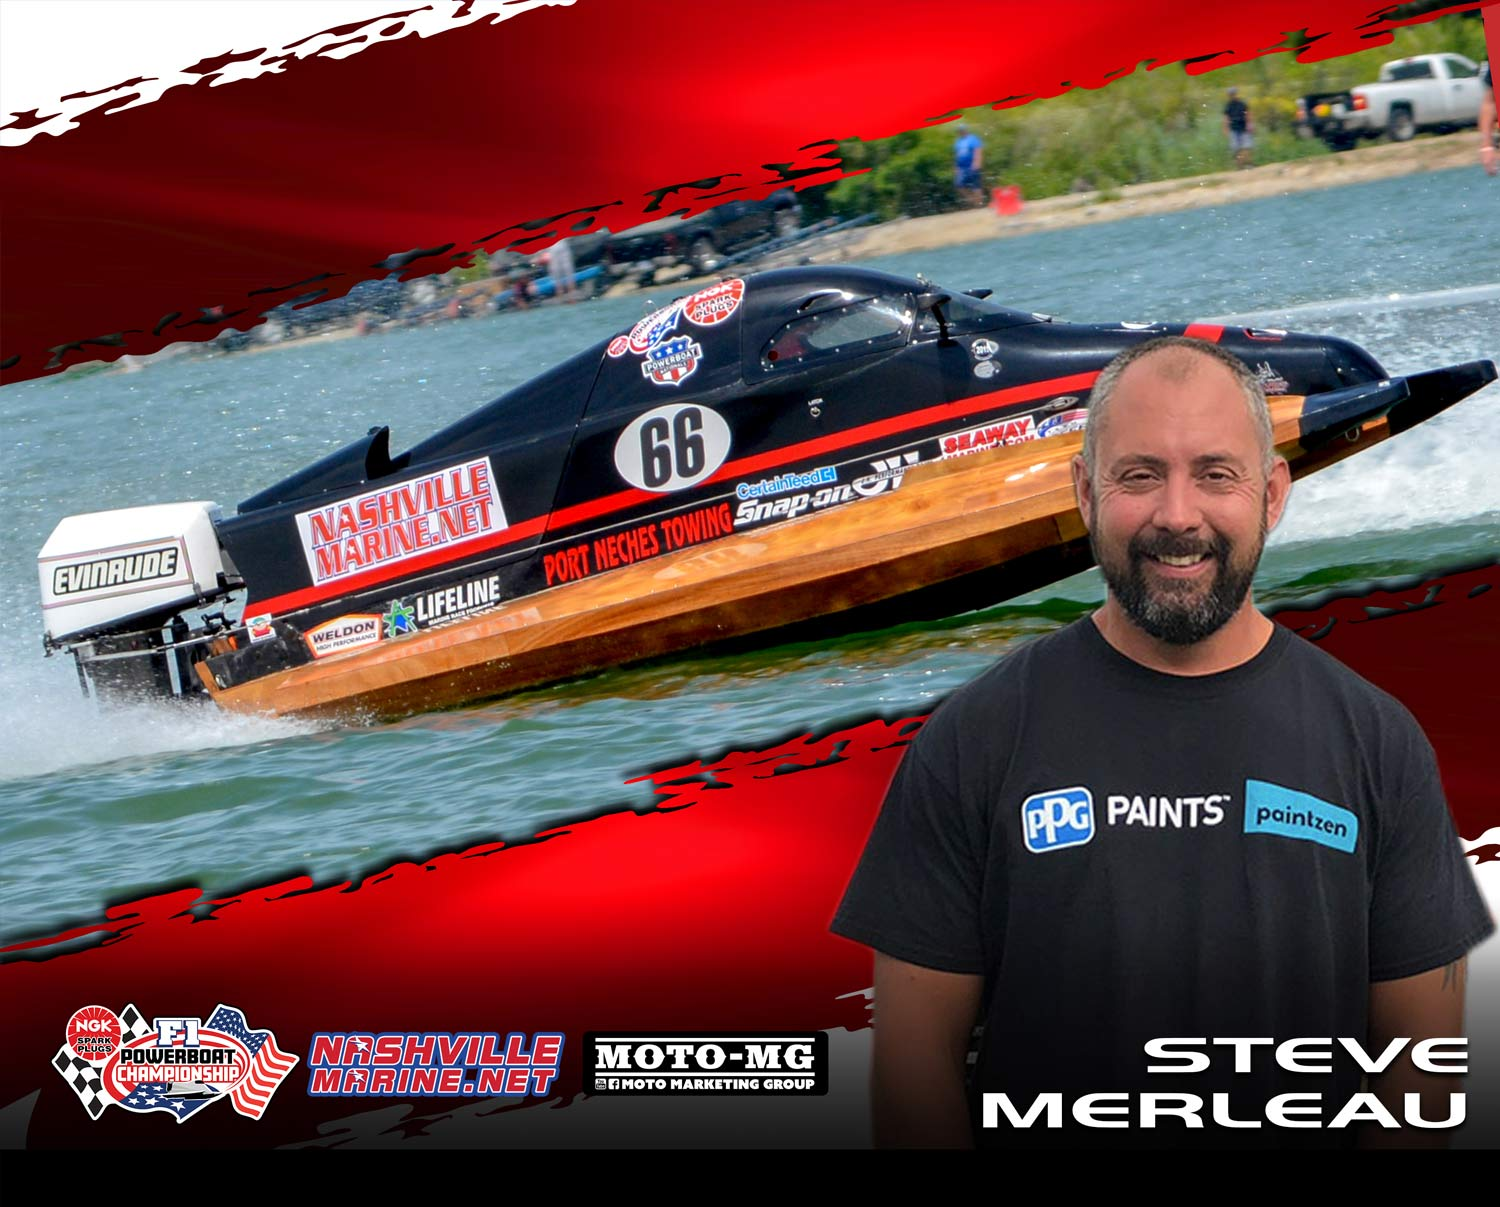 Nashville-Marine-McMurray-Racing-Formula-One-Boat-Racing-Driver-Steve-Merleau-66